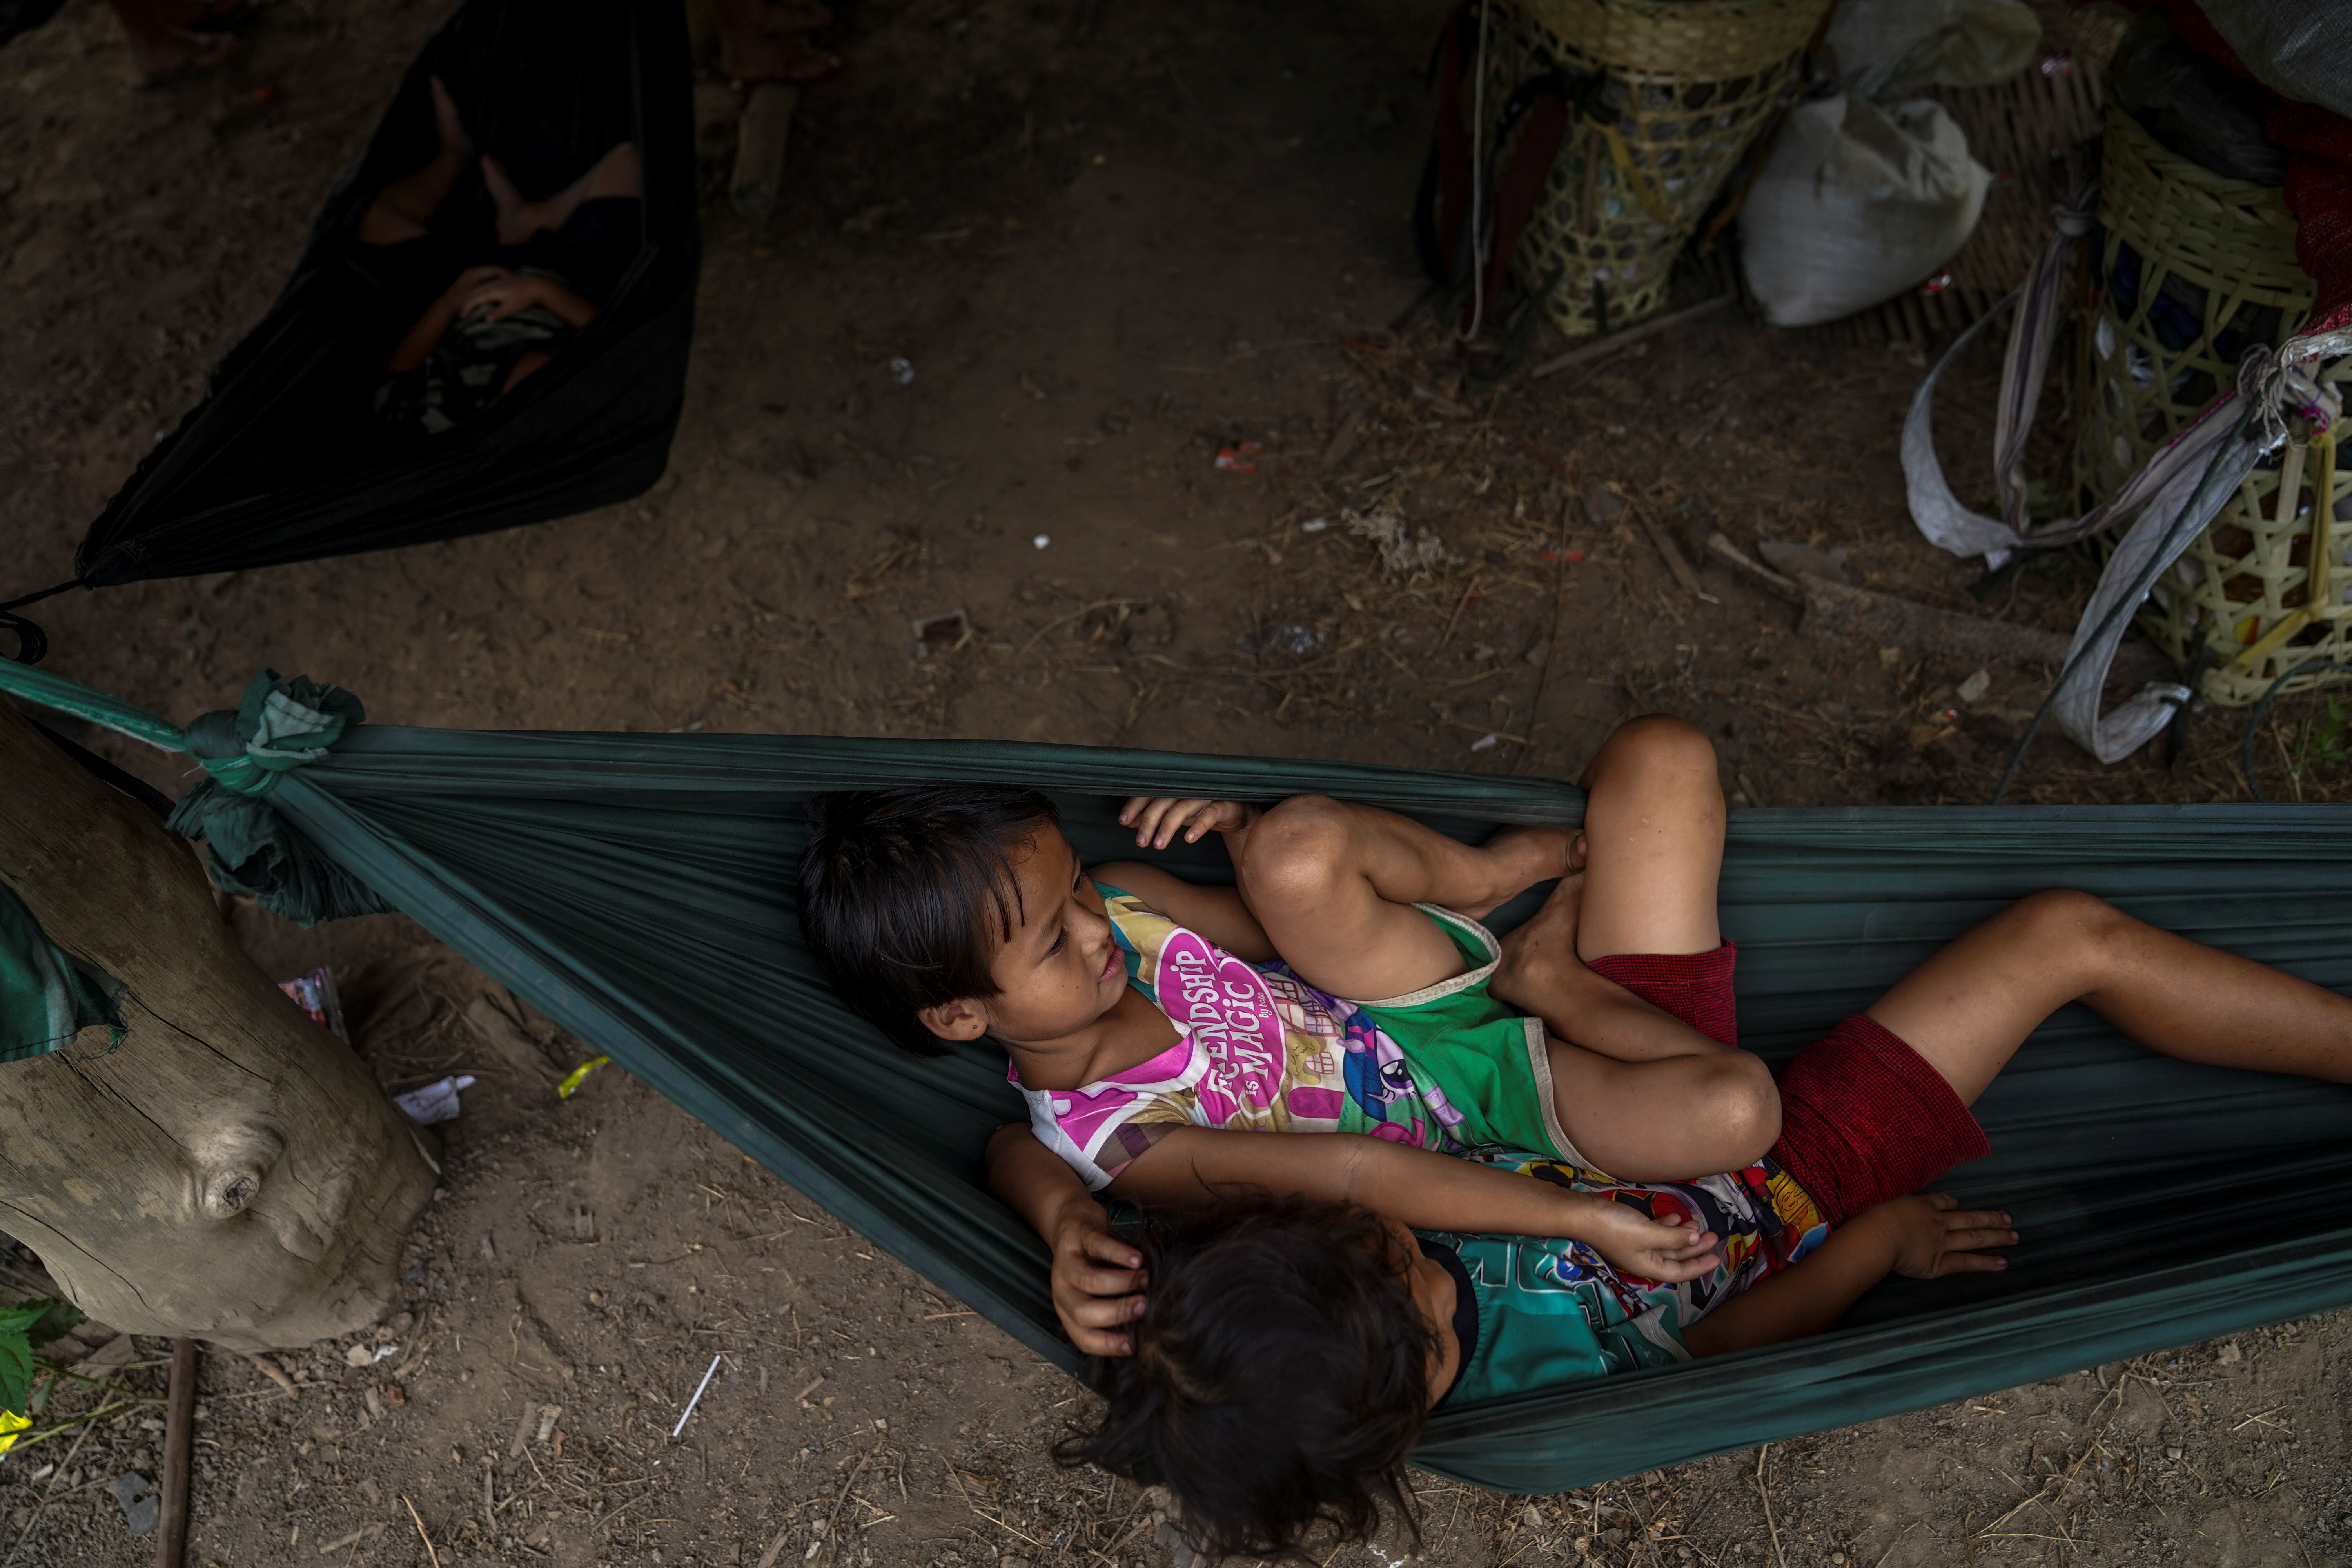 Children sit in a hammock near the Burmese border in Mae Hong Son province, Thailand, while fleeing from gunfire between ethnic minority Karen insurgents and Myanmar military, April 29, 2021. REUTERS/Athit Perawongmetha